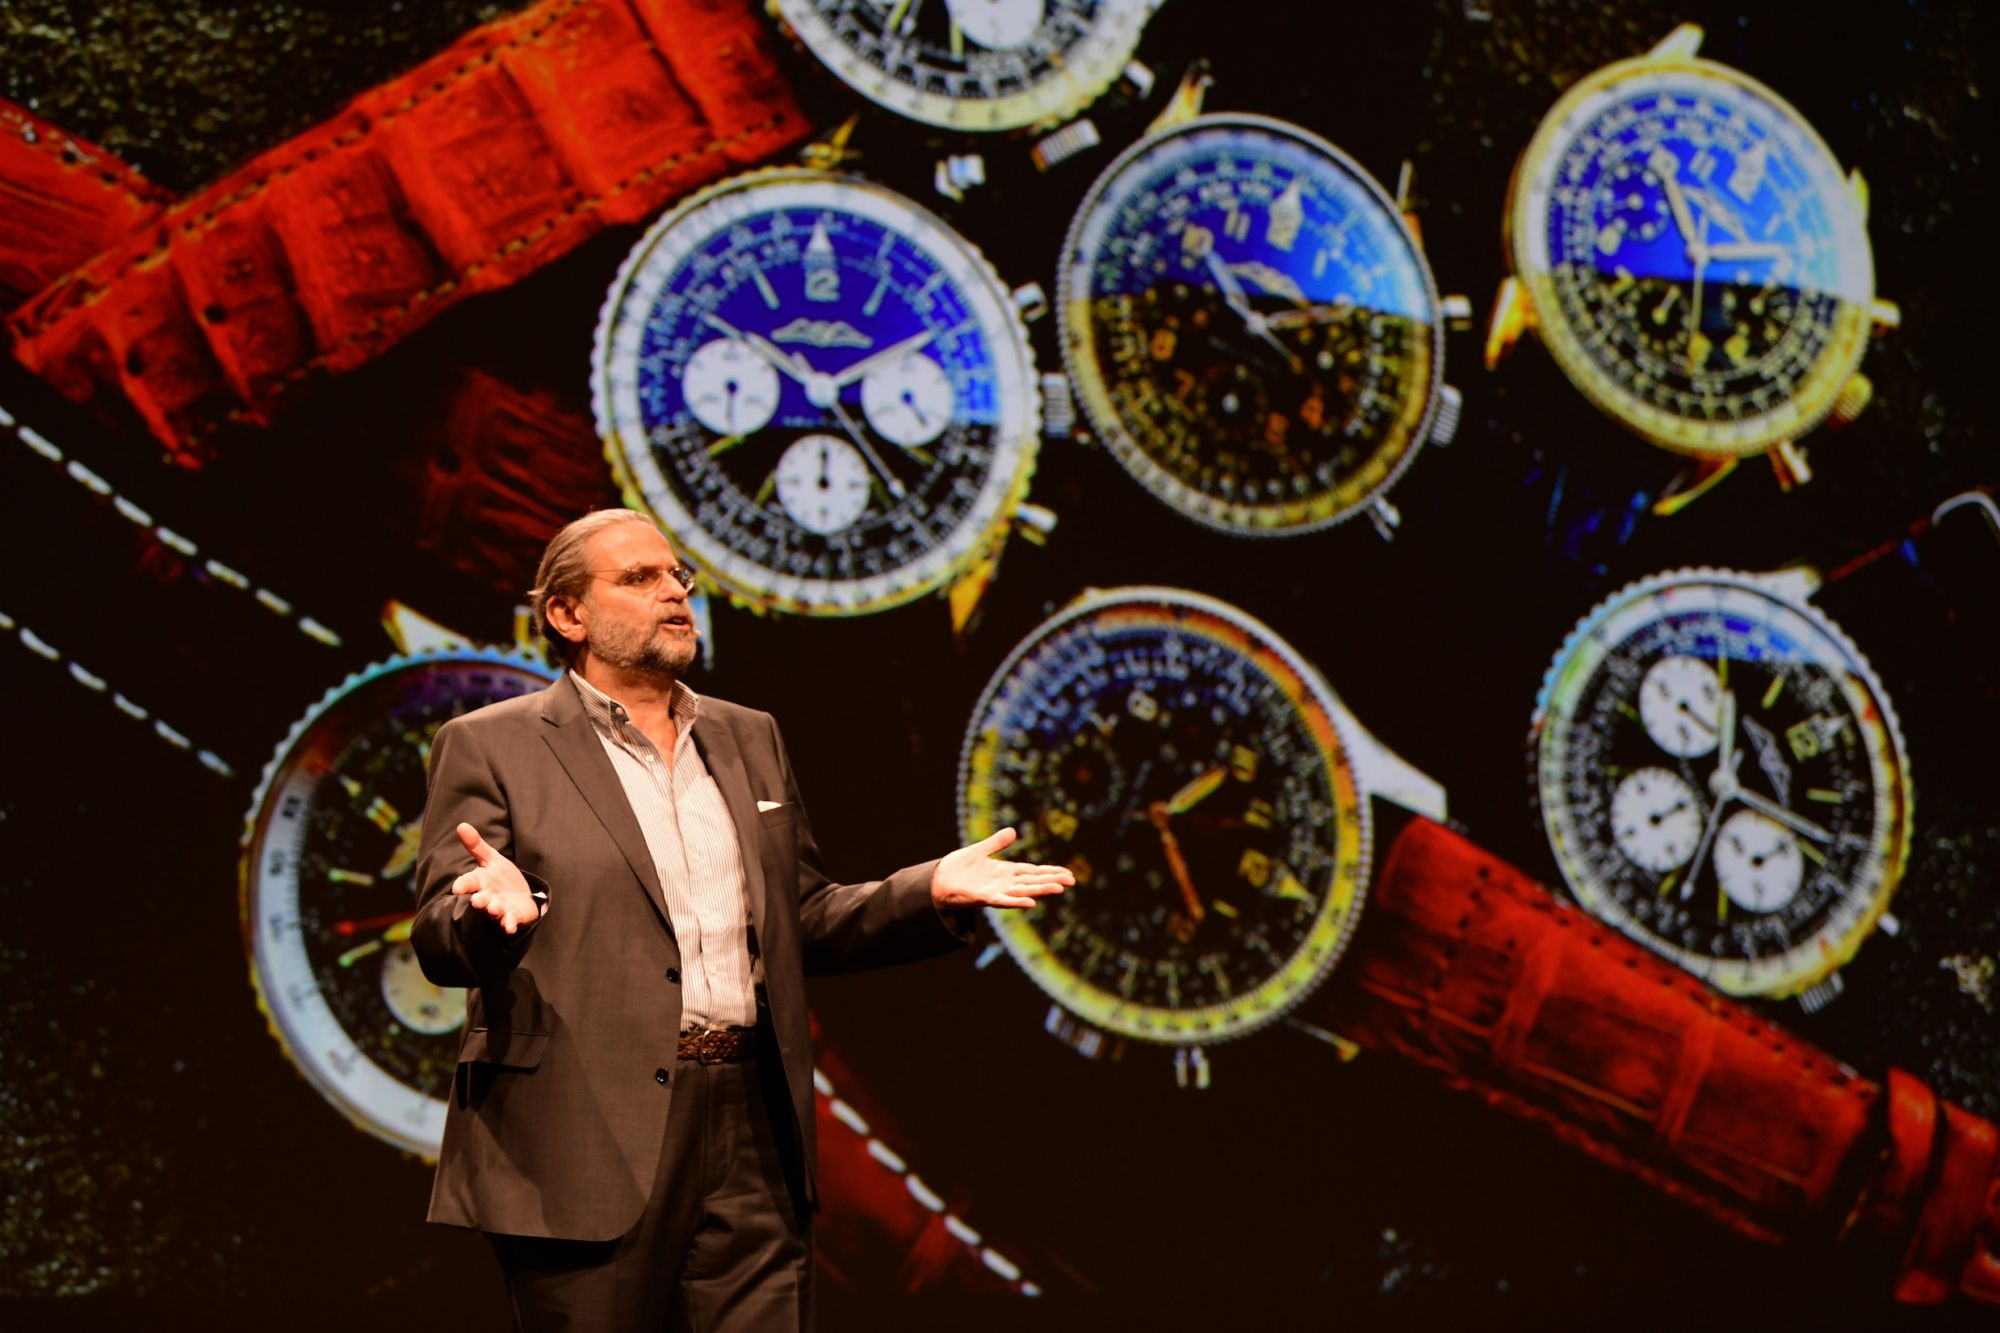 BASEL, SWITZERLAND - MARCH 21: Fred Mandelbaum during the Breitling Baselworld Summit 2019 at Dreispitzhalle on March 21, 2019 in Basel, Switzerland. (Photo by Adrian Bretscher/Getty Images for Breitling)